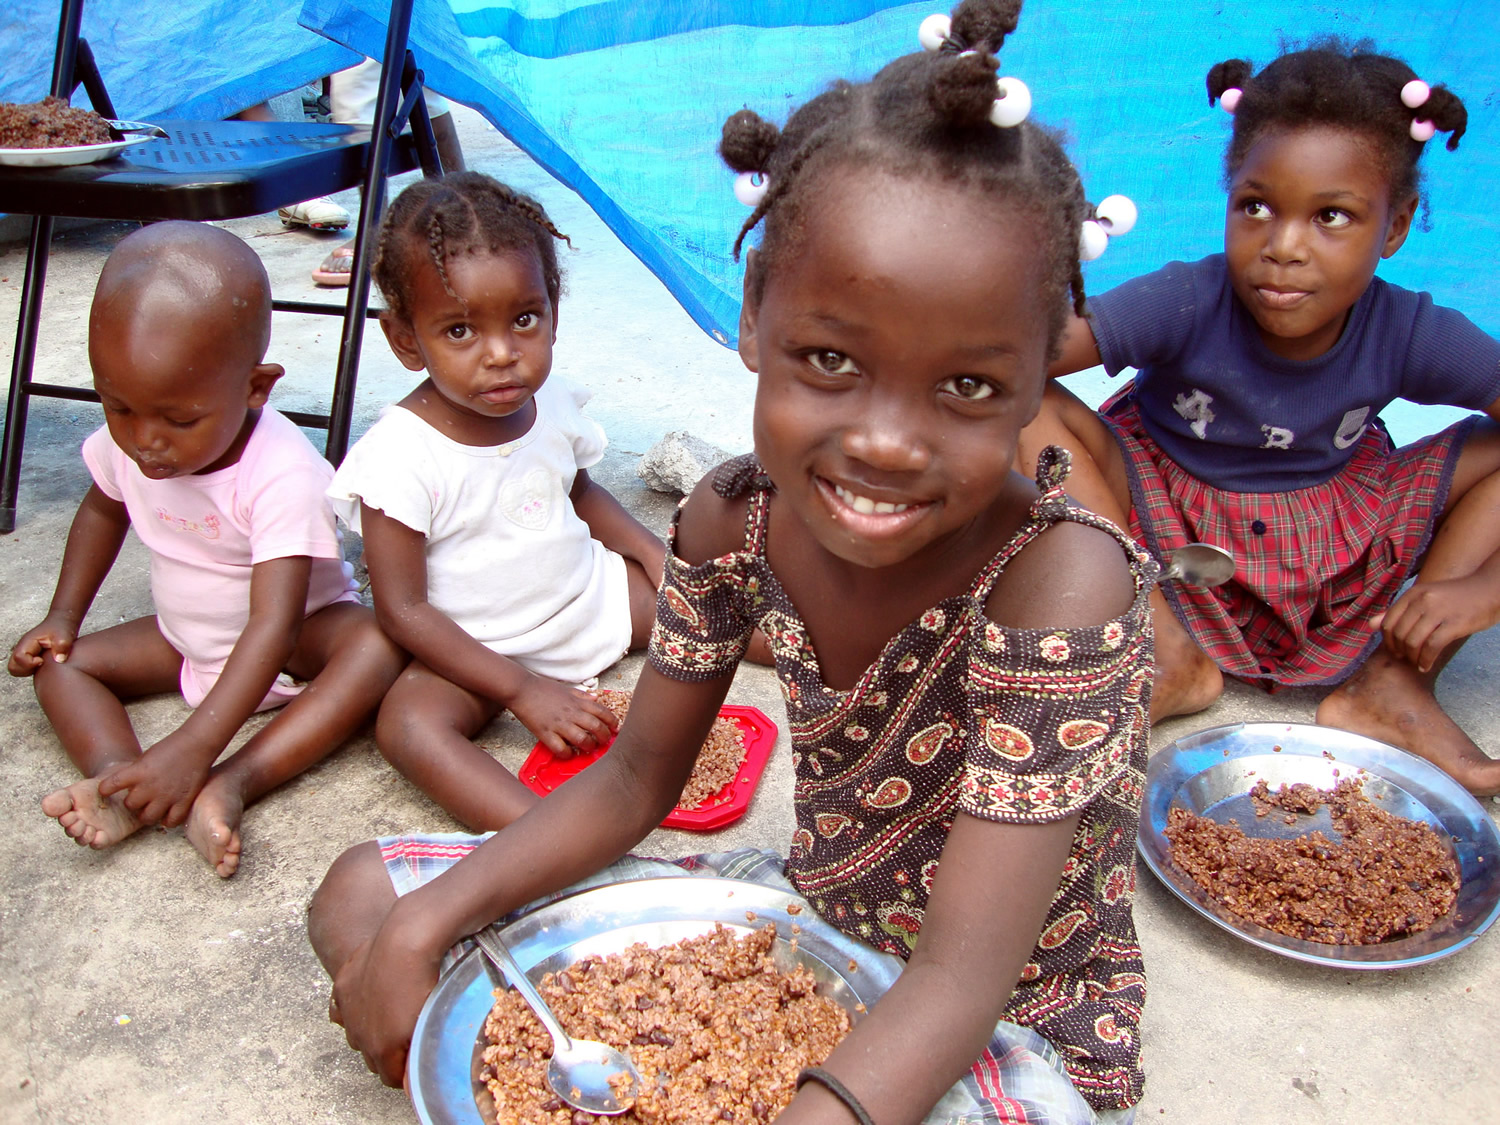 Children eating a rice dish_SMALL.jpg